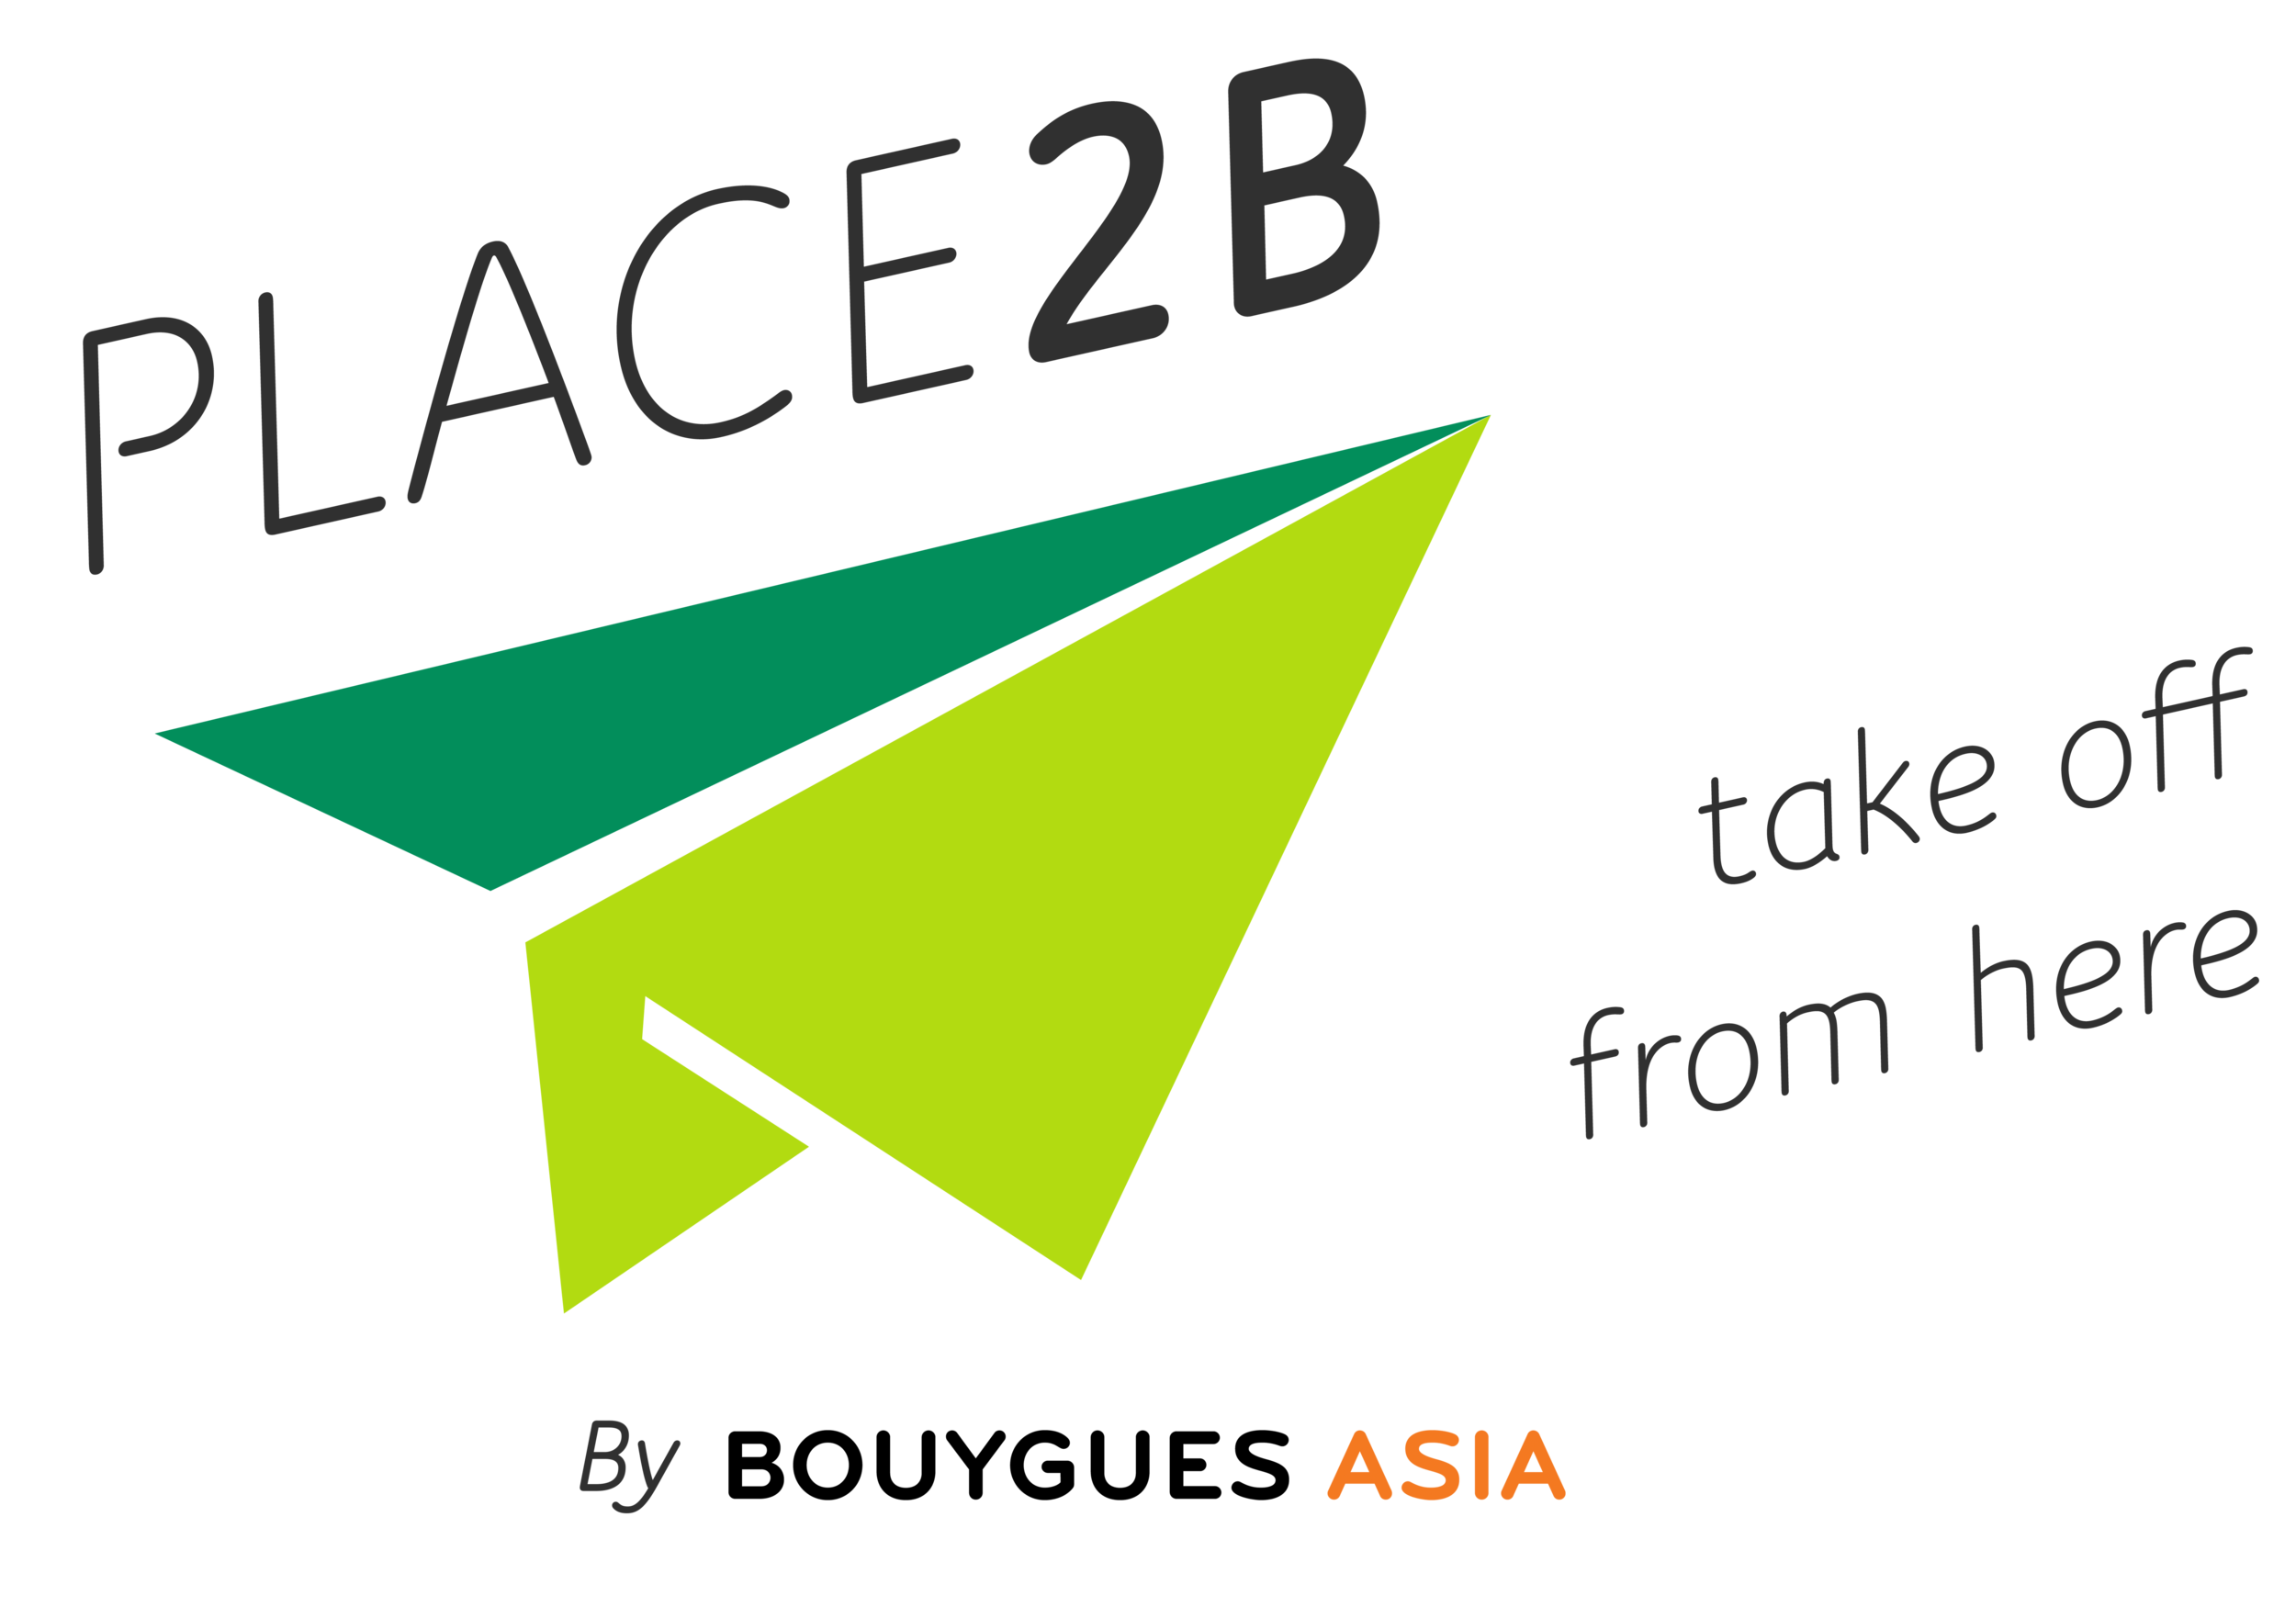 LOGO_P2B_Take off from here.png